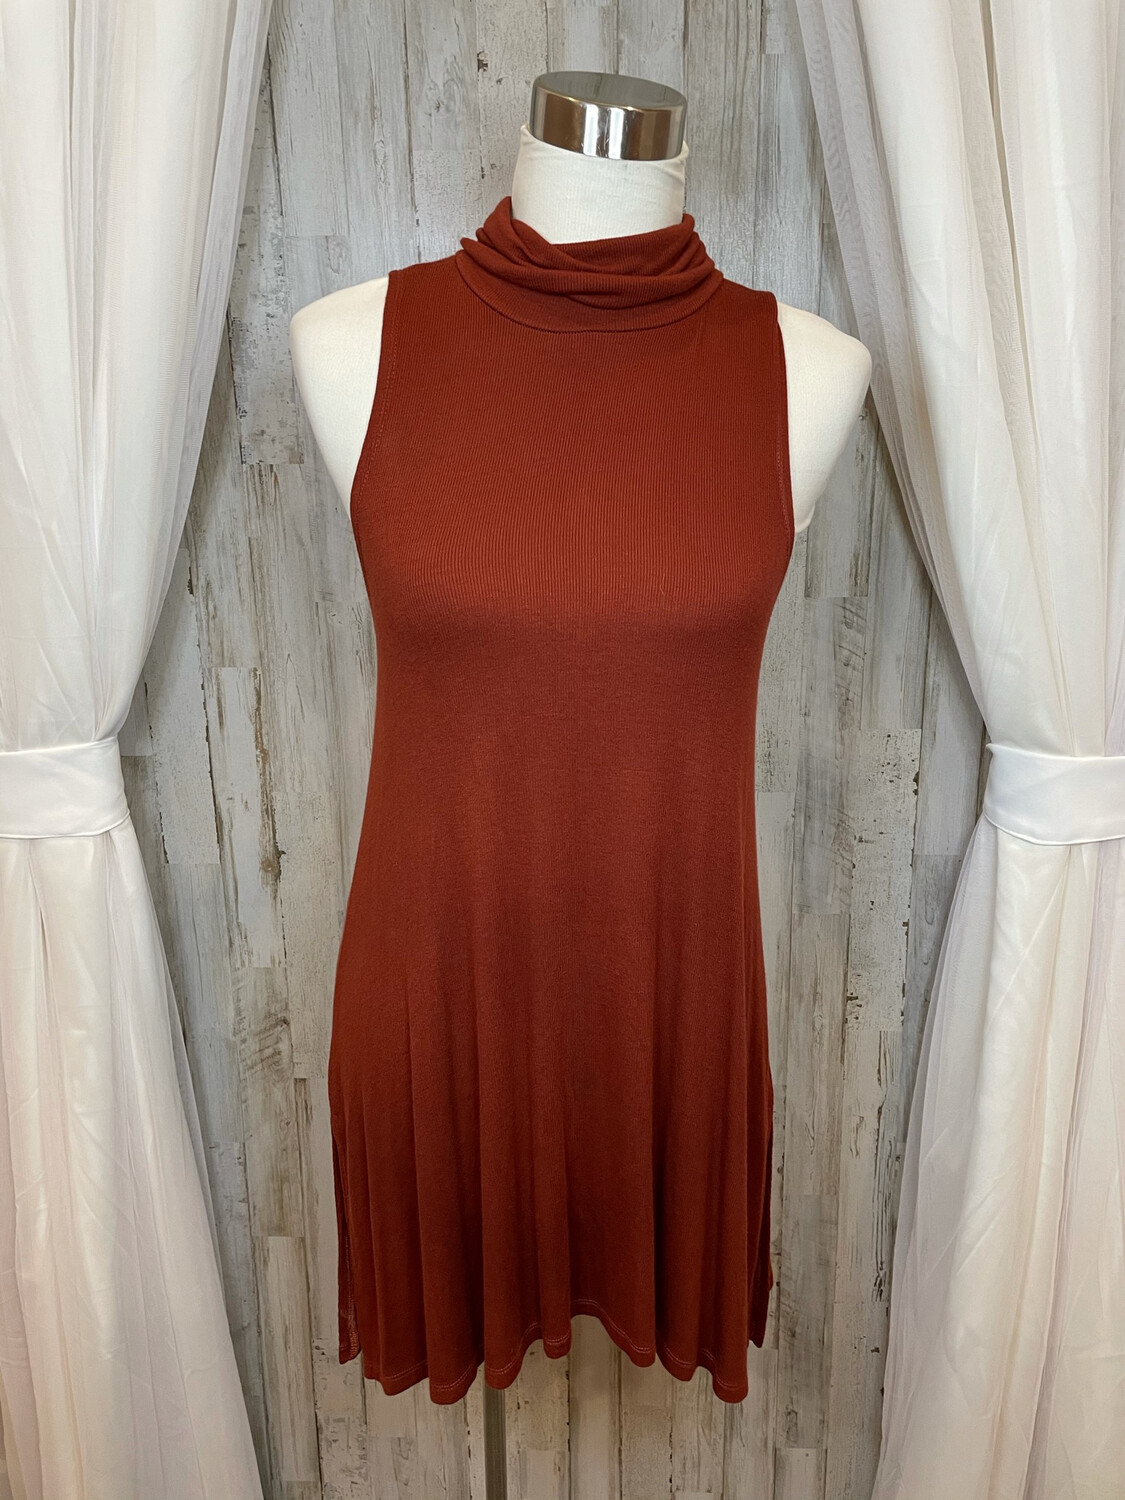 9-H15 STCL Rust Mock Turtle Neck Ribbed Tank Dress - M